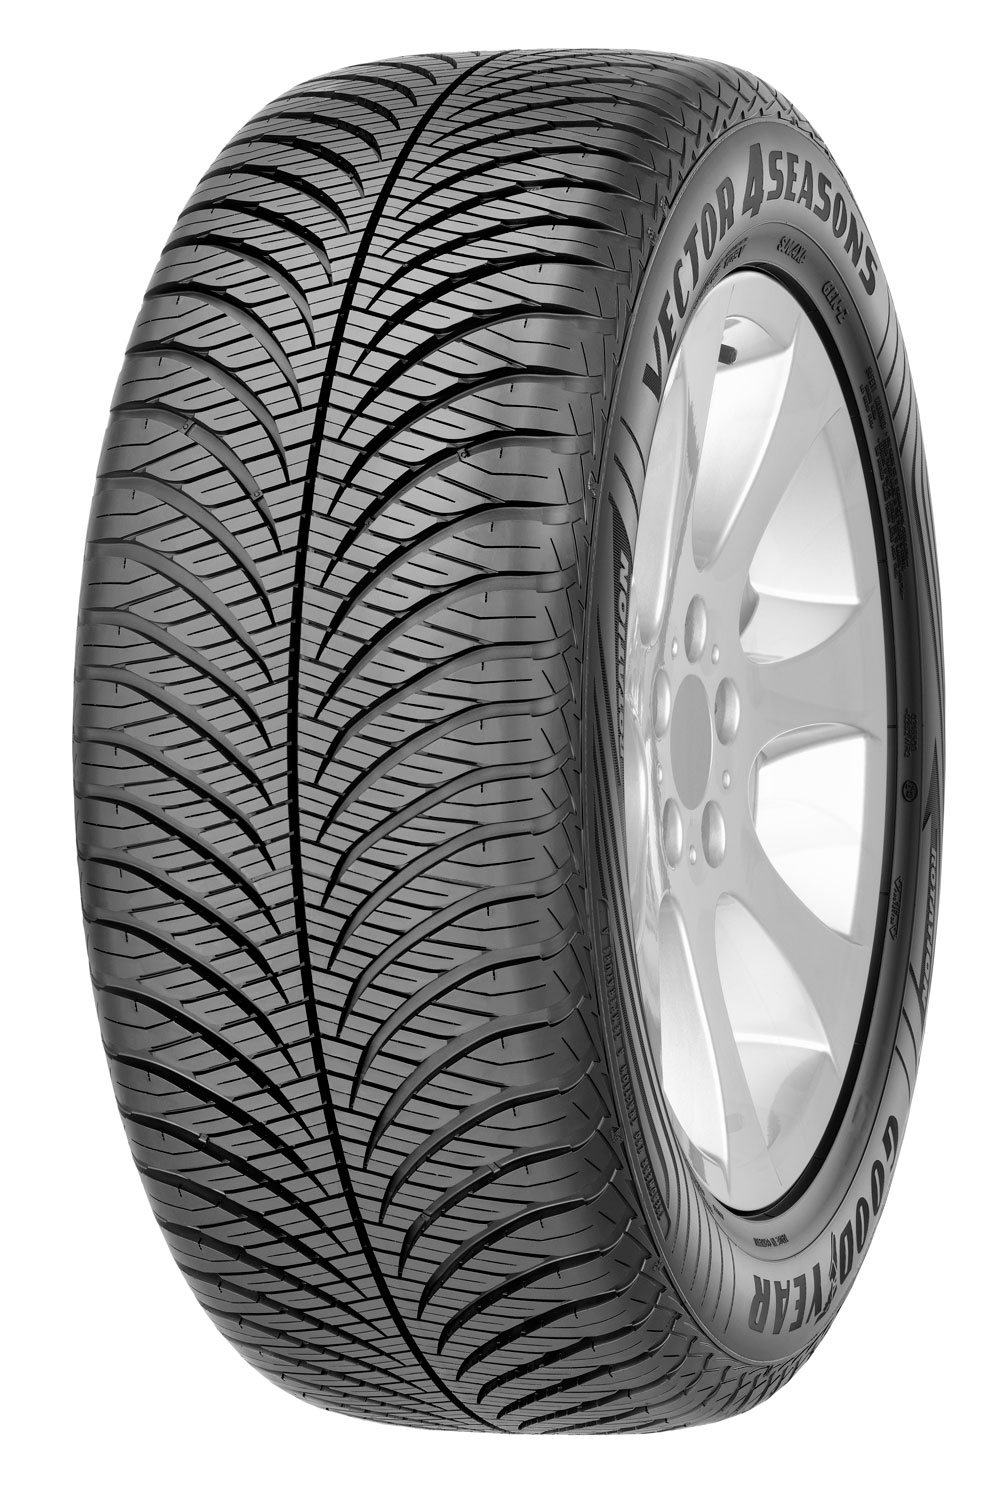 185/60 R14 Goodyear Vector 4Seasons G2 82H